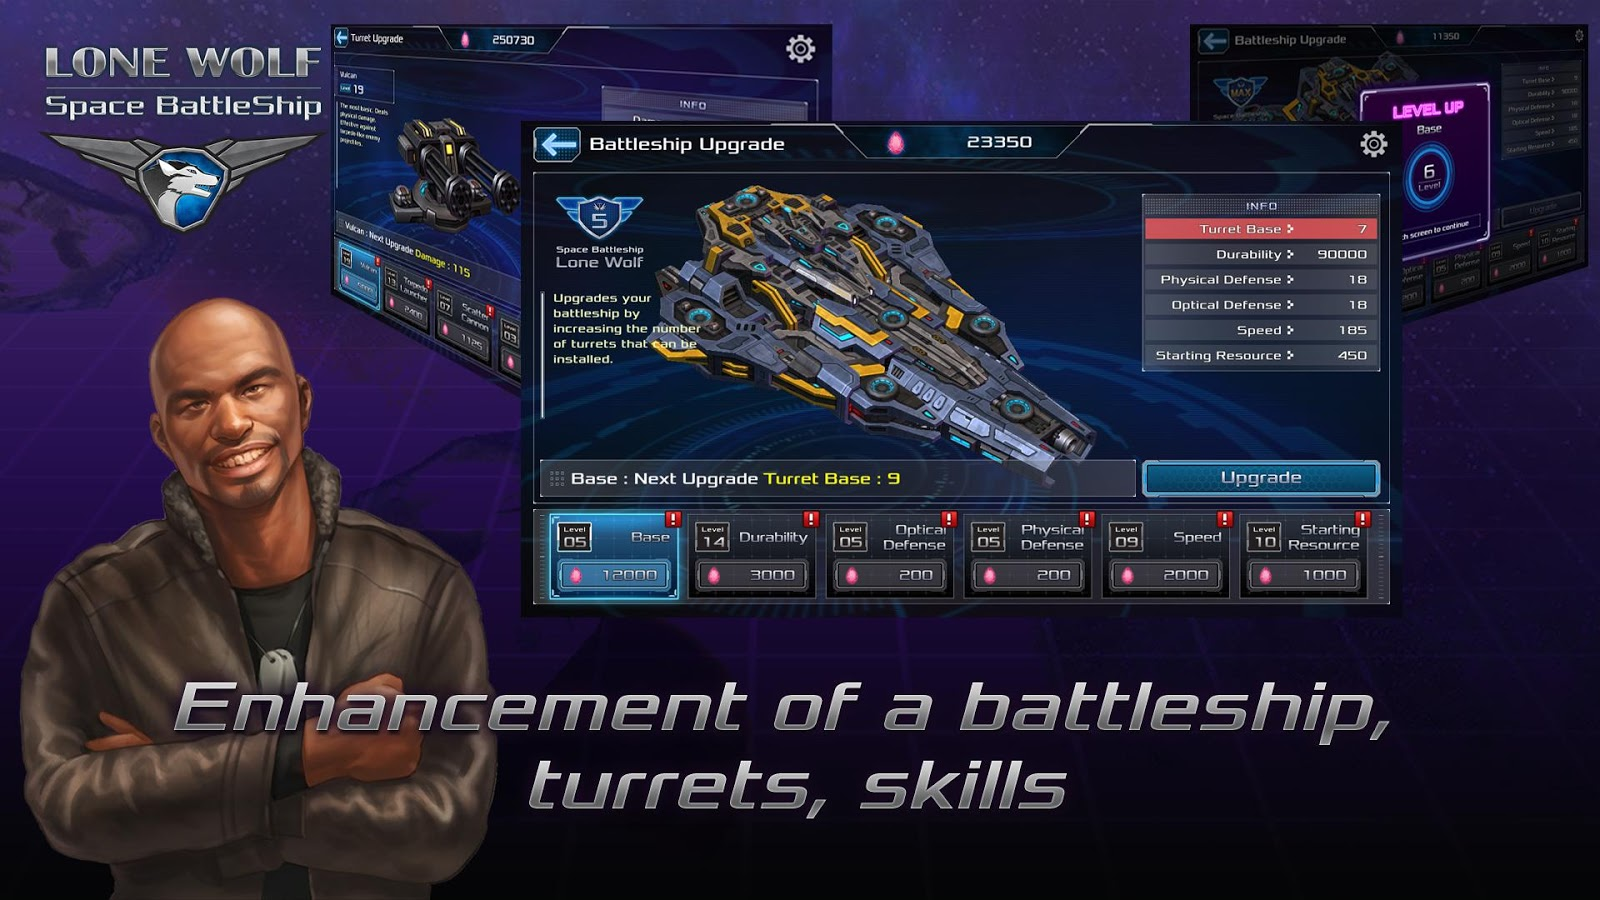 Battleship Lonewolf - Space TD Screenshot 10